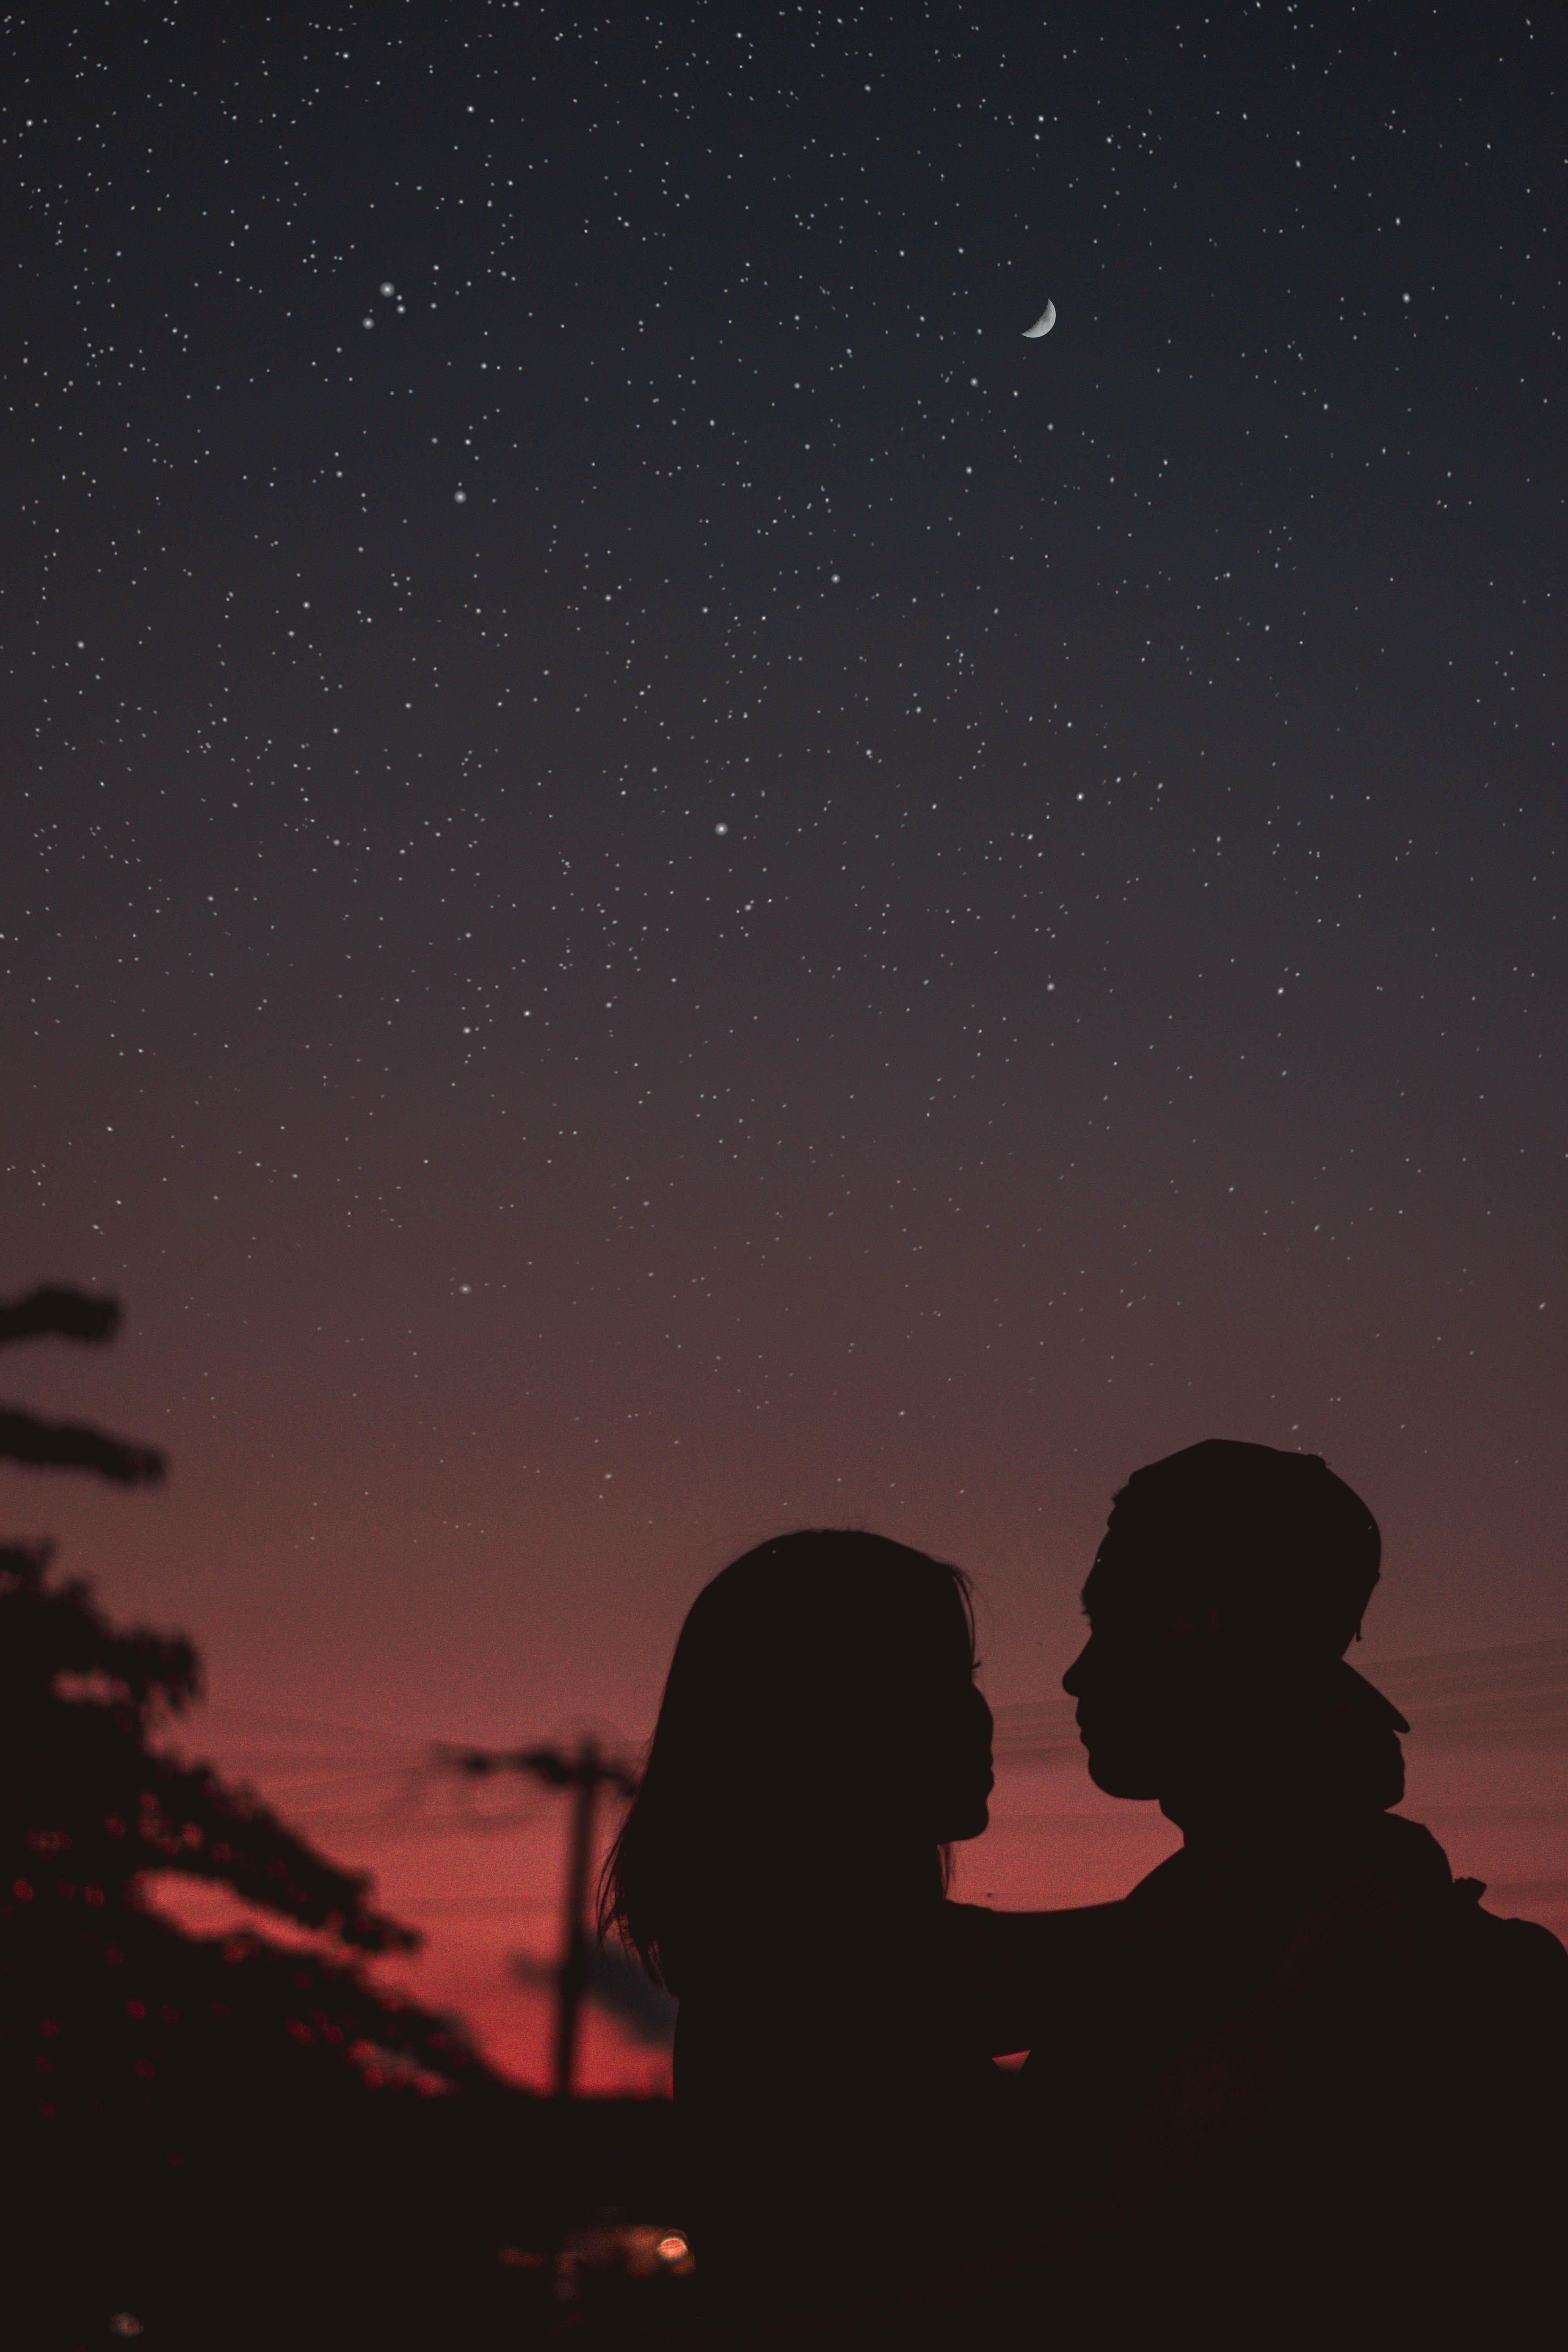 silhouette of woman hugging mna under starry night sky